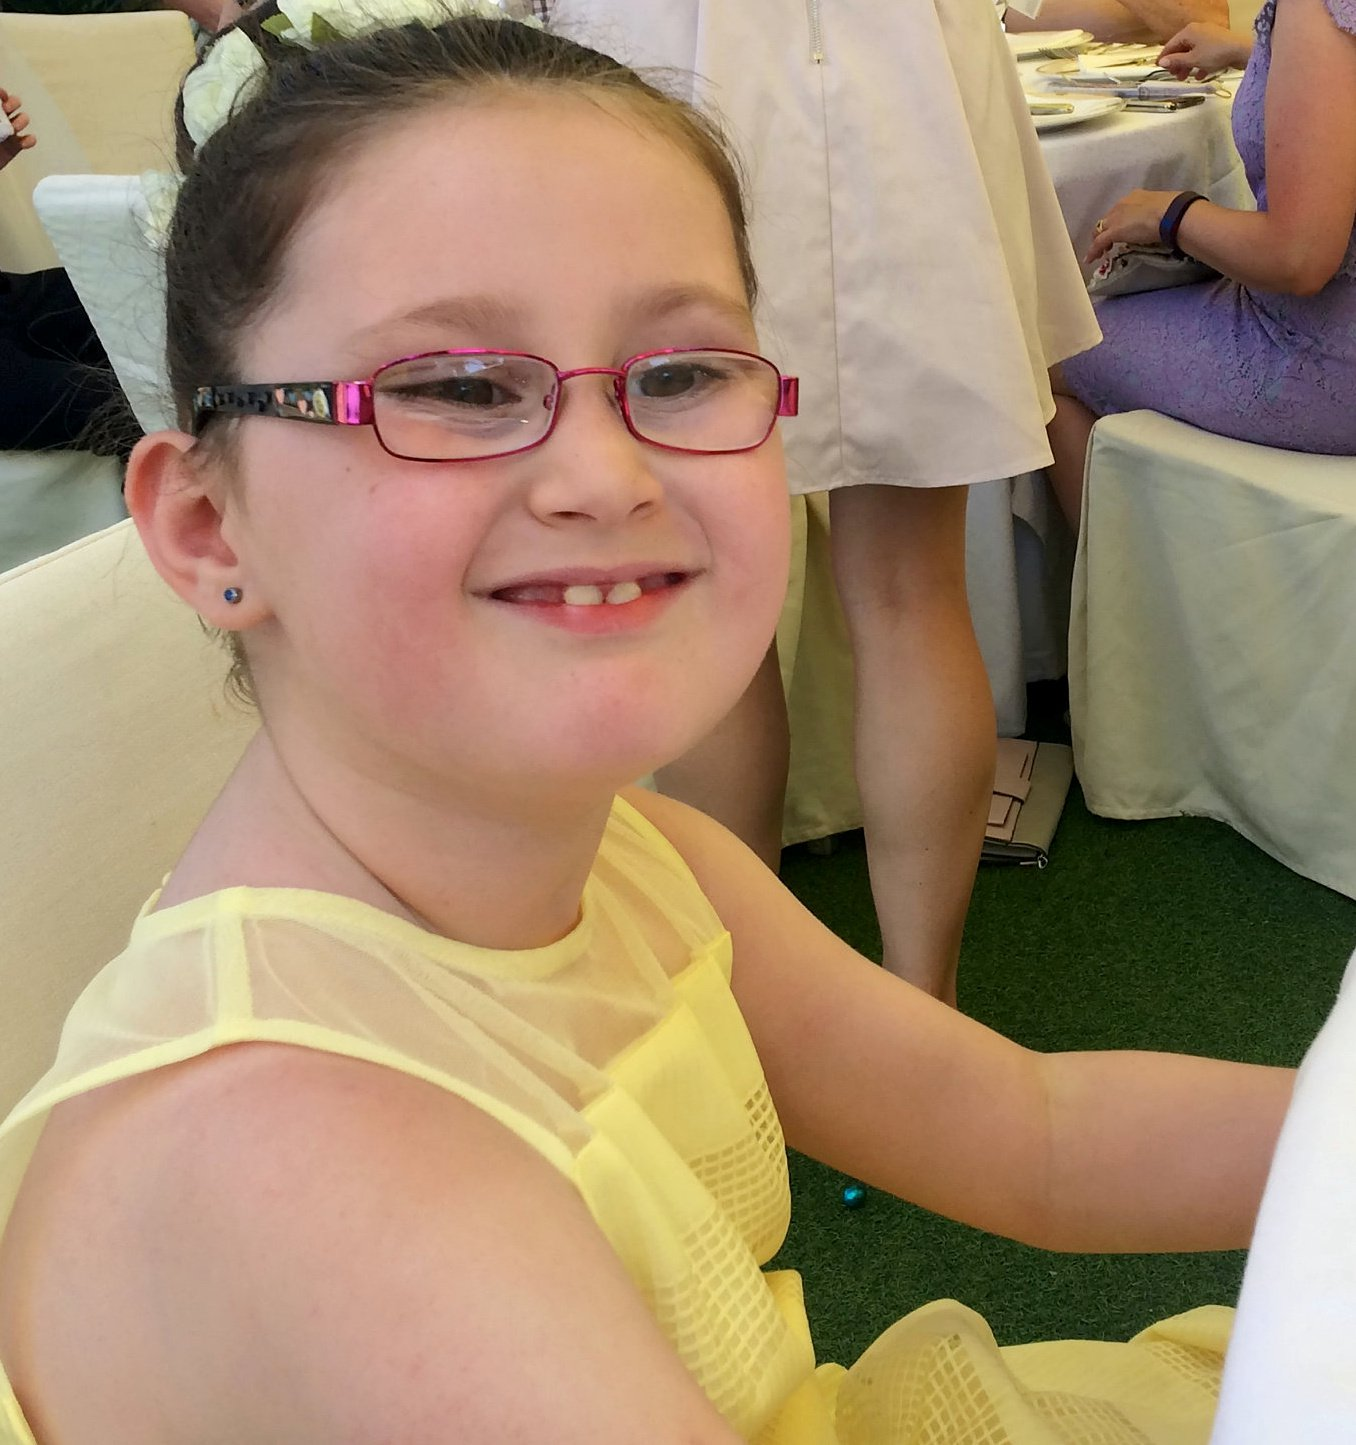 """Kiera Woodhouse,7 of Nottingham before the dog attack June 2018 whilst on holiday in Italy. An autistic schoolgirl has been left """"mentally scarred"""" after she was left with horrific facial injuries from a vicious dog attack. See SWNS story SWMDmaul. Kiera Young, 7, had her lip ripped off after stoking a white and black Akita outside the Witham Tavern, Boston, on February 27 just after 2pm. Her grandmother Sharon Young, 57, had taken her to the pub for her sister Debbie Hayes 60th Birthday. The mum-of-two, from Nottingham walked, whilst Kiera was driven down by Debbie. The 57-year-old said she heard her granddaughter screaming across the river and dashed to the scene. She saw Kiera bleeding from her mouth and rushed her to Pilgrim Hospital, Boston, where her wounds were cleaned. The youngster, spent nearly three hours in surgery at Lincolnshire Hospital the next day to repair her facial injuries. Kiera was diagnosed with autism at the age of three and struggles to eat and keeps her distance when ever she see a dog in the street since the attack. Sharon, who been Kiera's carer since she was 11 months old, said she has still not received an apology from the dog's owners."""